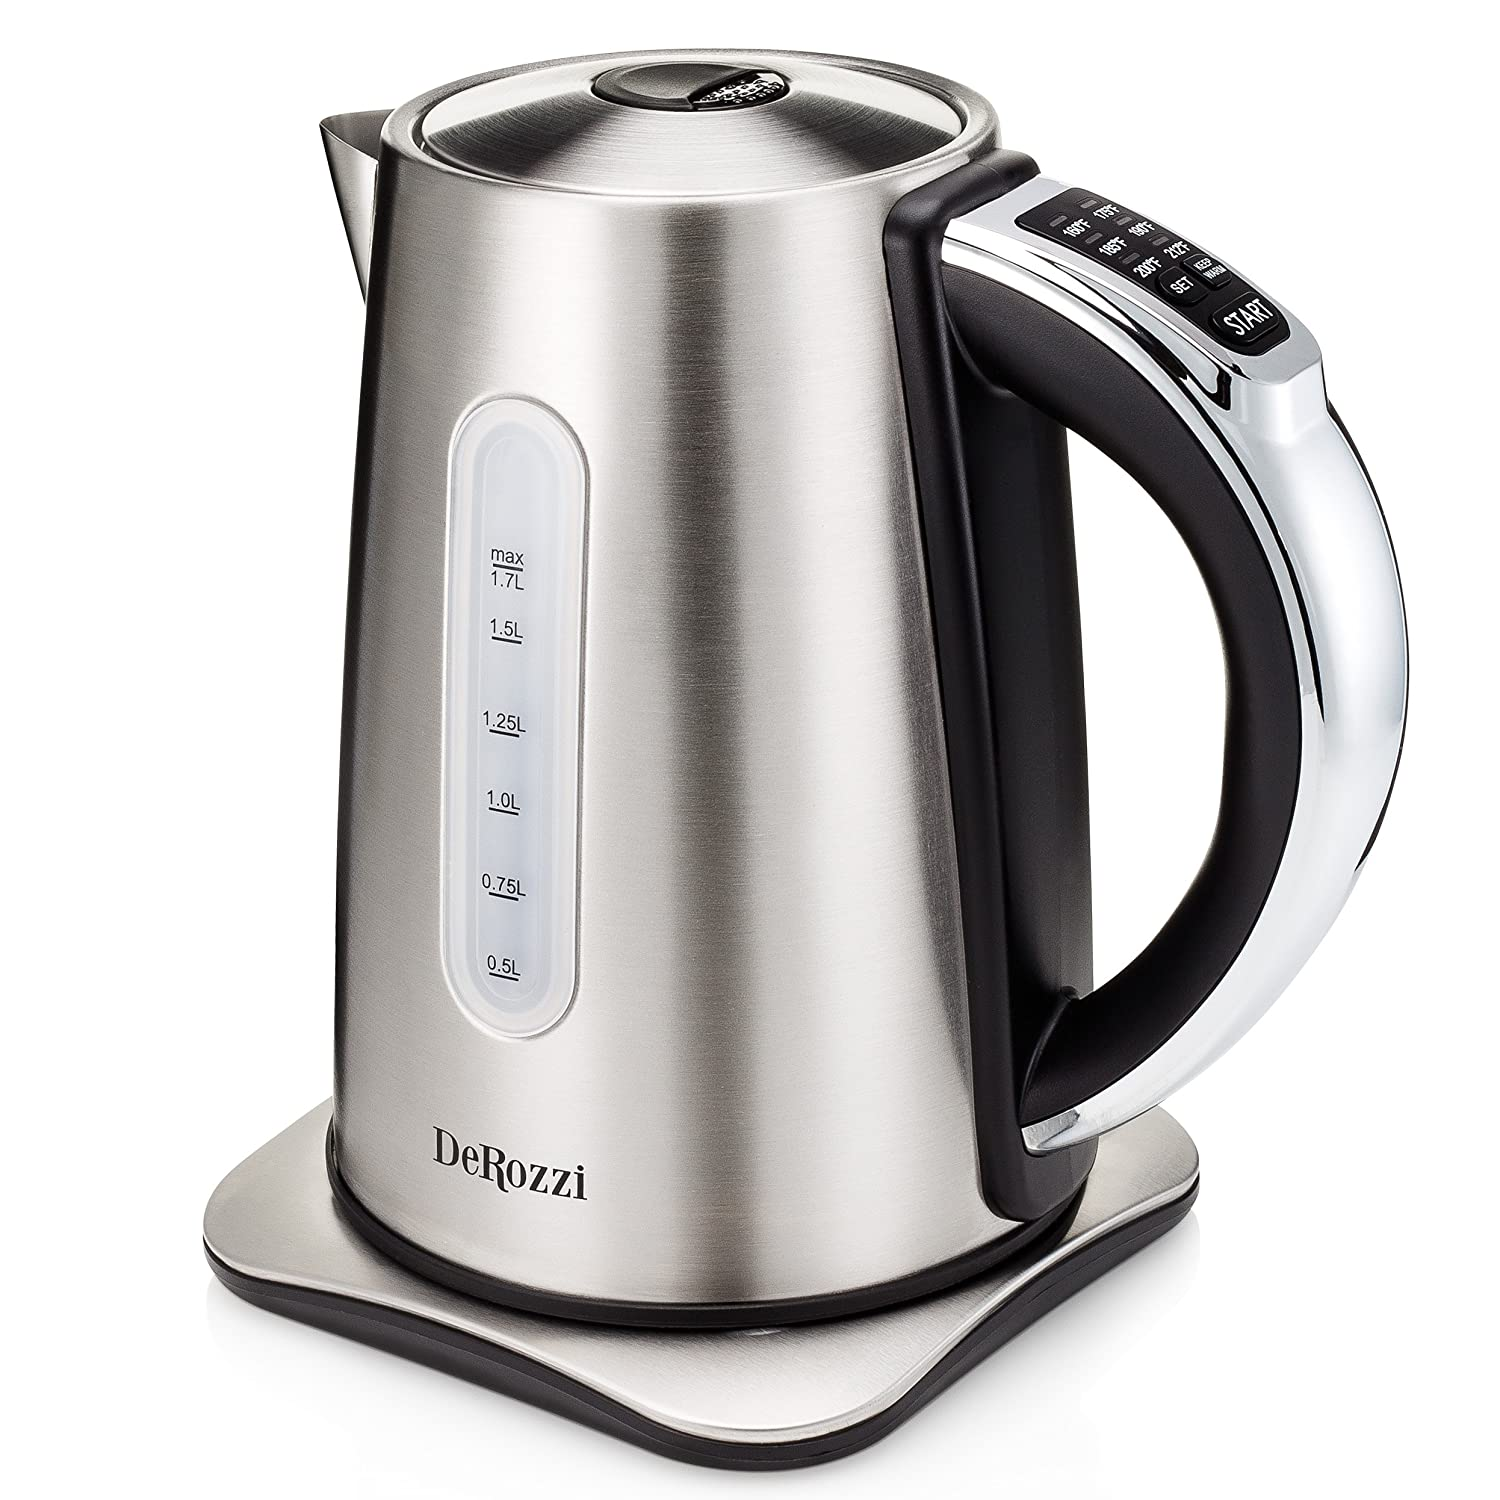 amazoncom derozzi stainless steel electric kettle for tea water  - amazoncom derozzi stainless steel electric kettle for tea water pot with temperature control variable heat settings cordless  liter kitchen dining